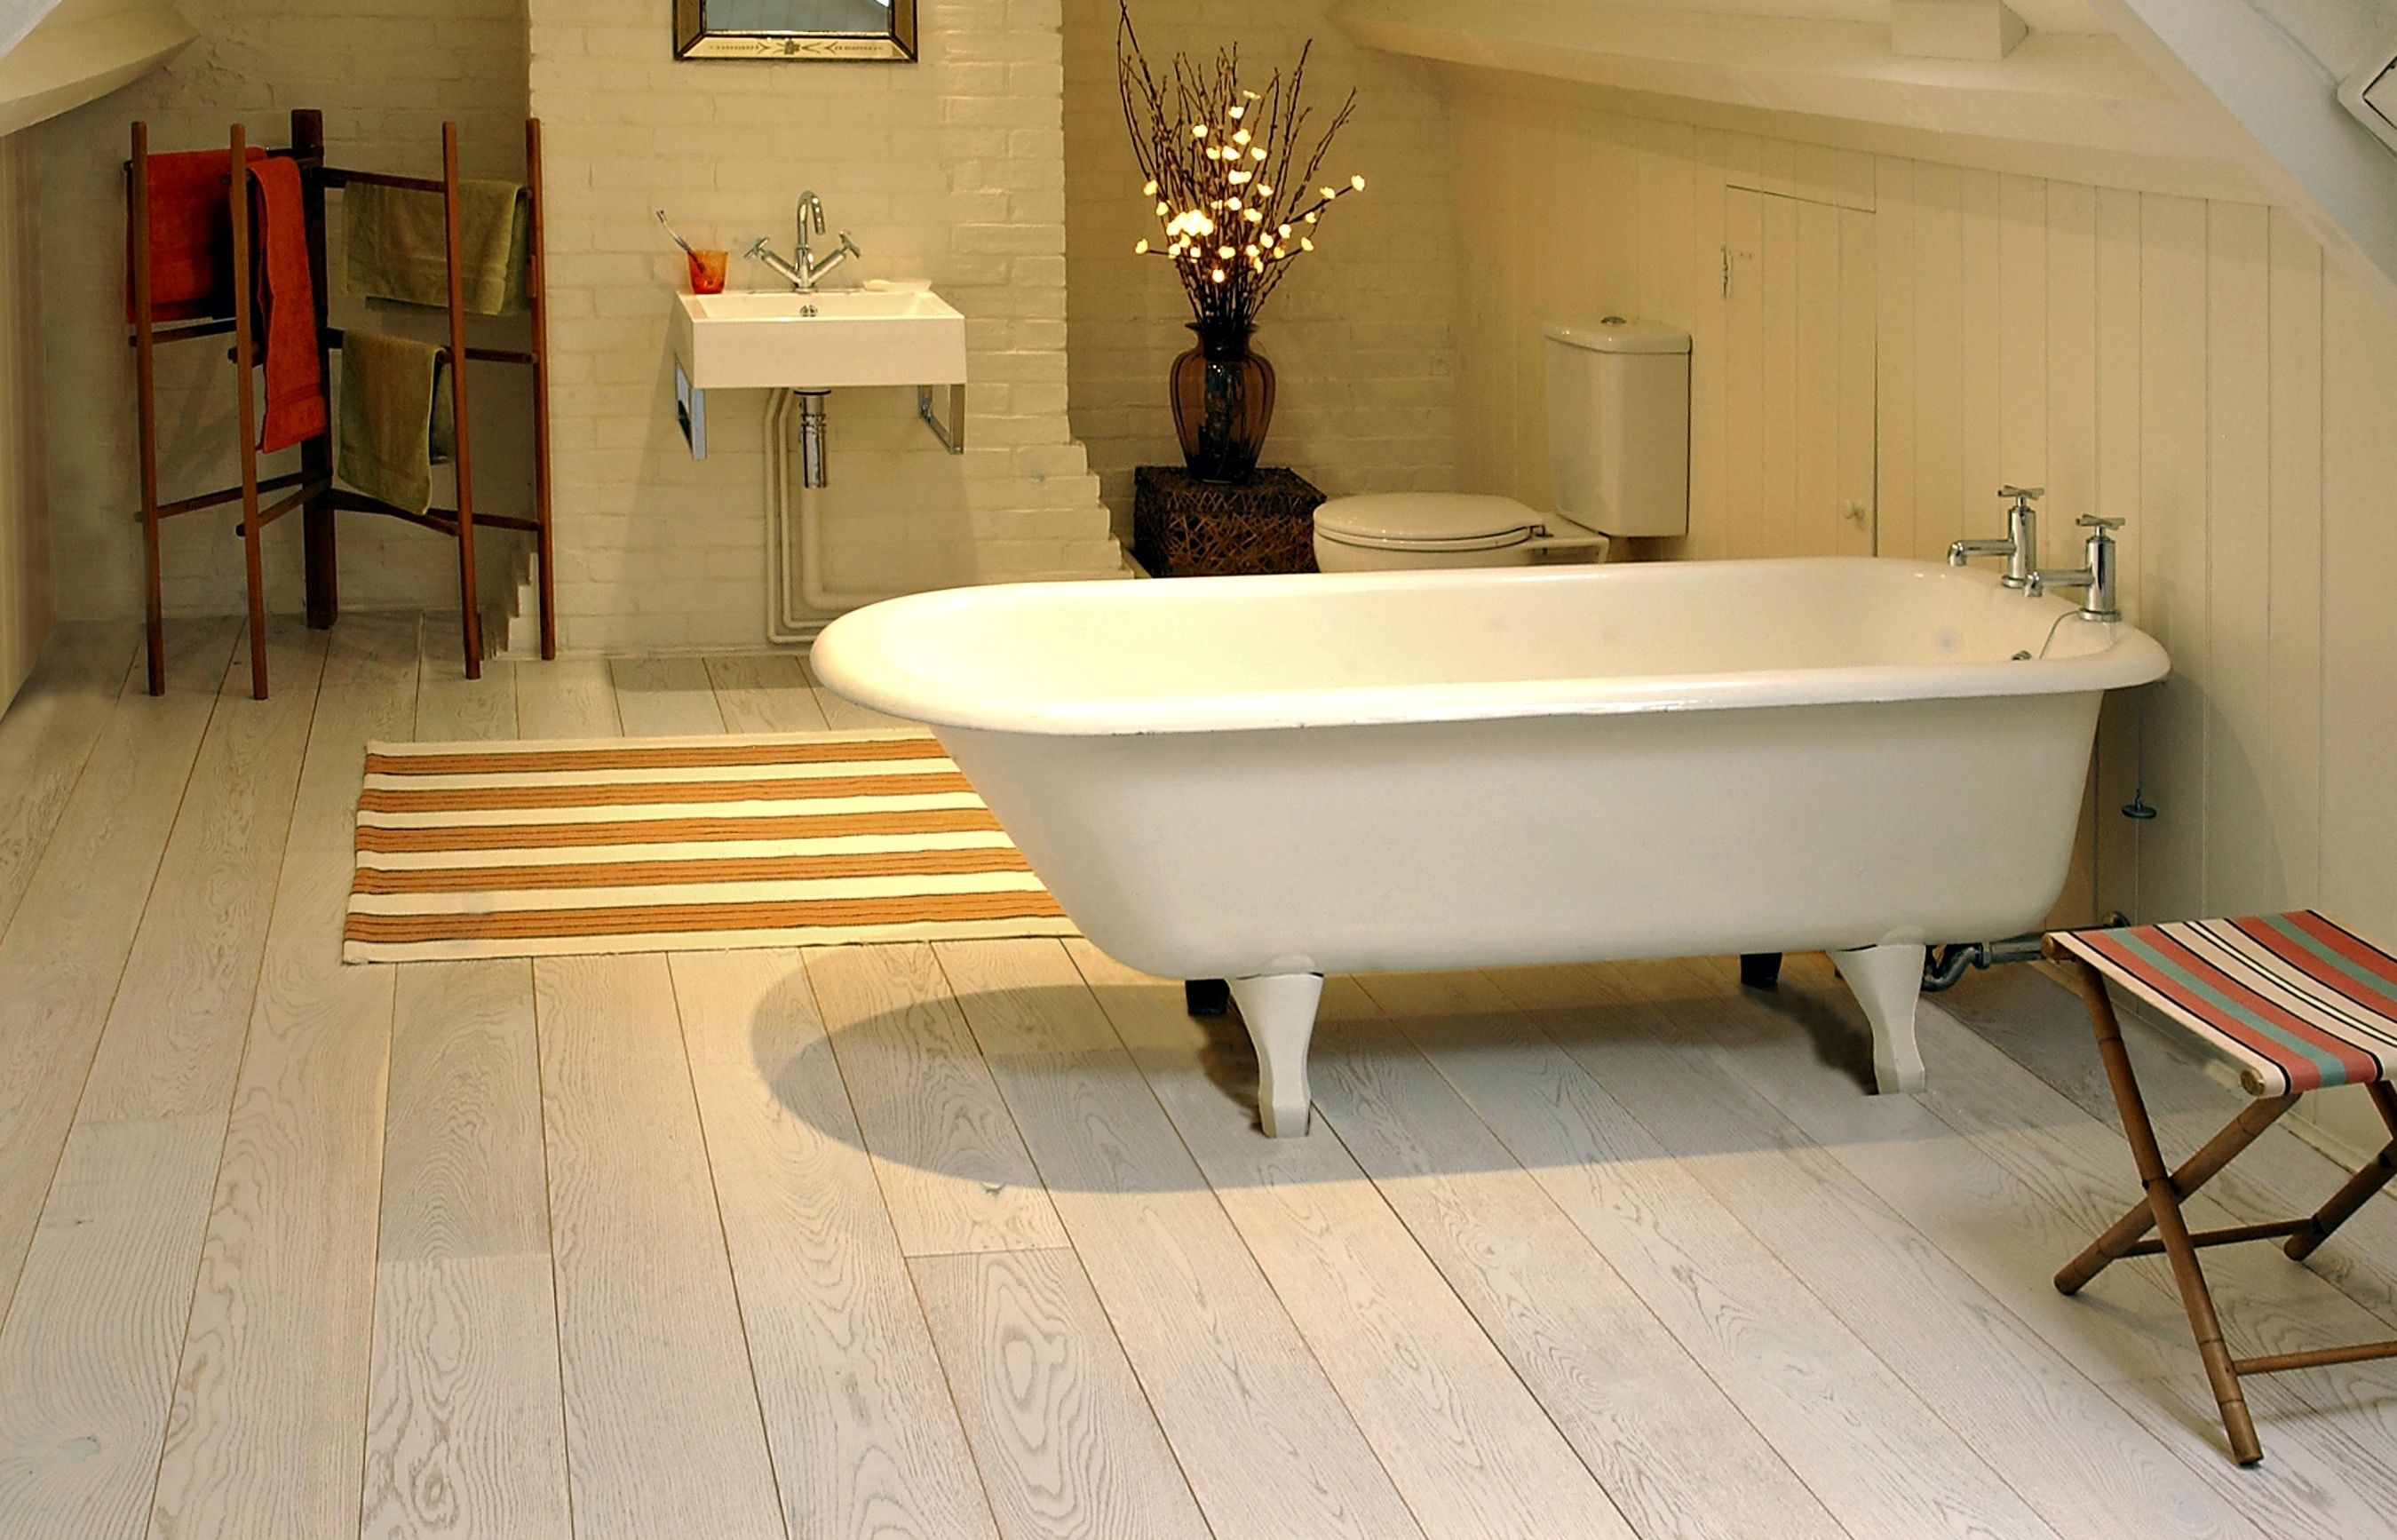 Types Of Vinyl Flooring For Bathrooms In the event you